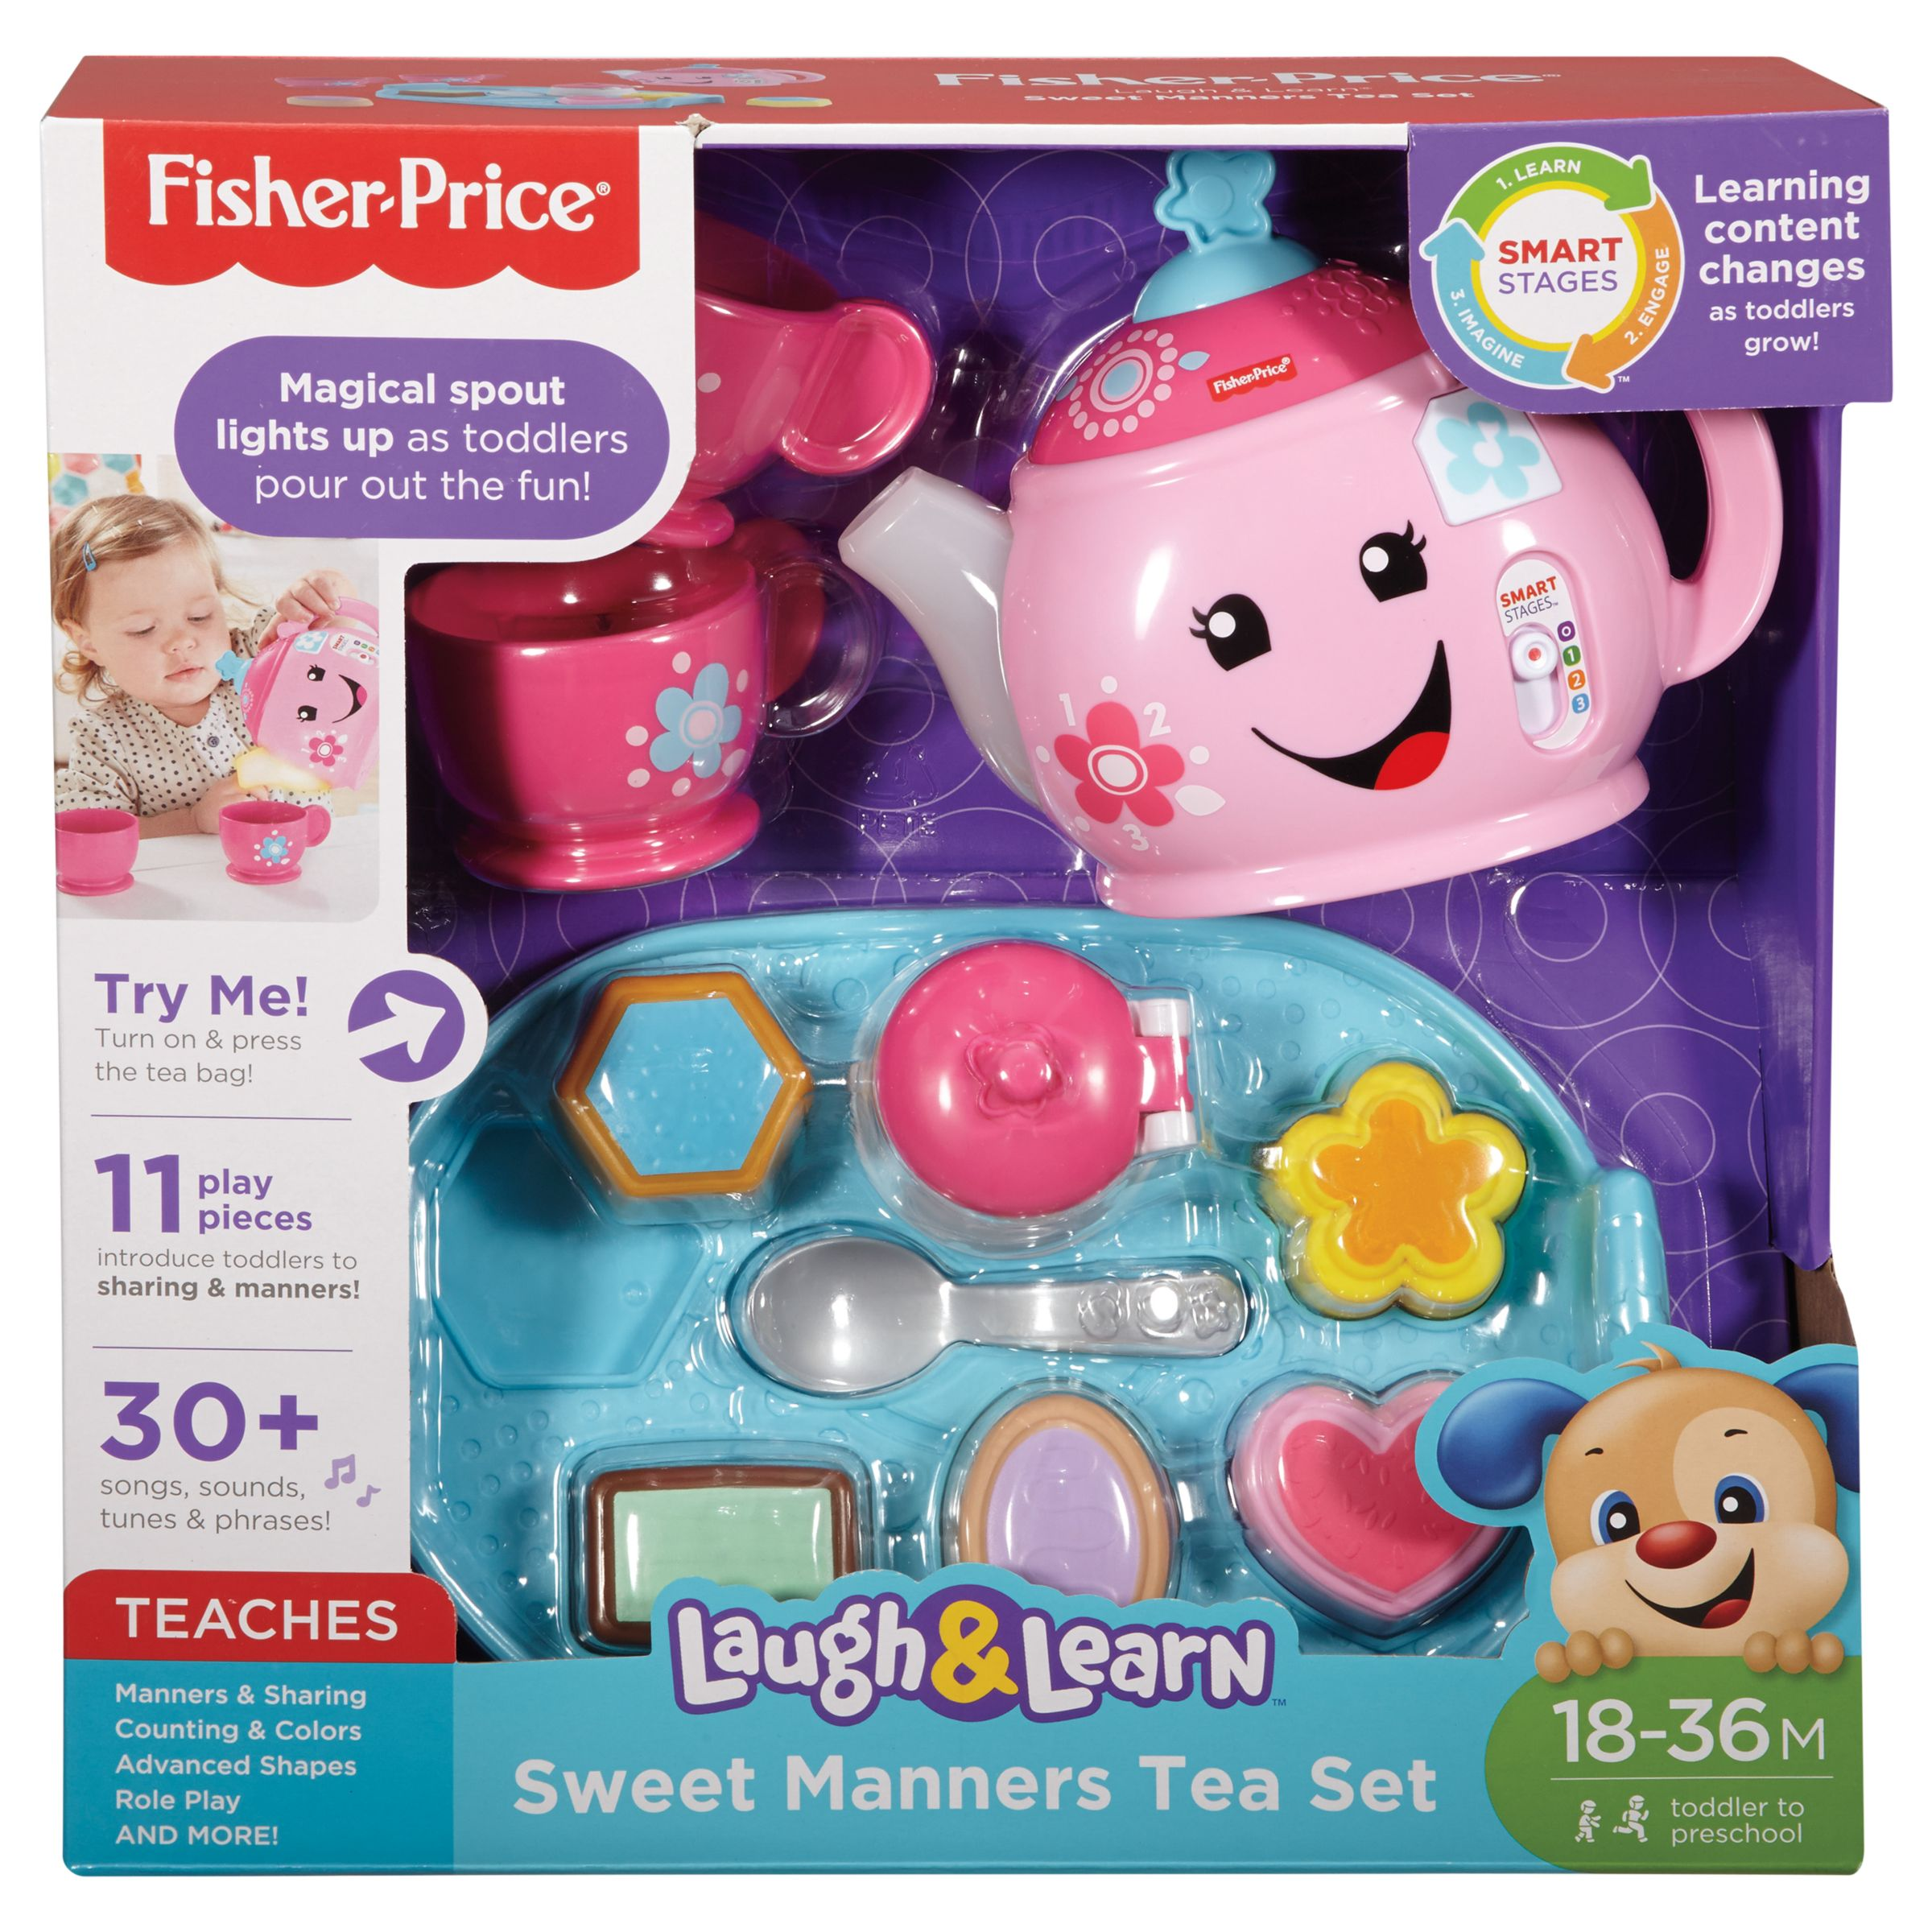 Fisher-Price Fisher-Price Laugh and Learn Sweet Manners Tea Set